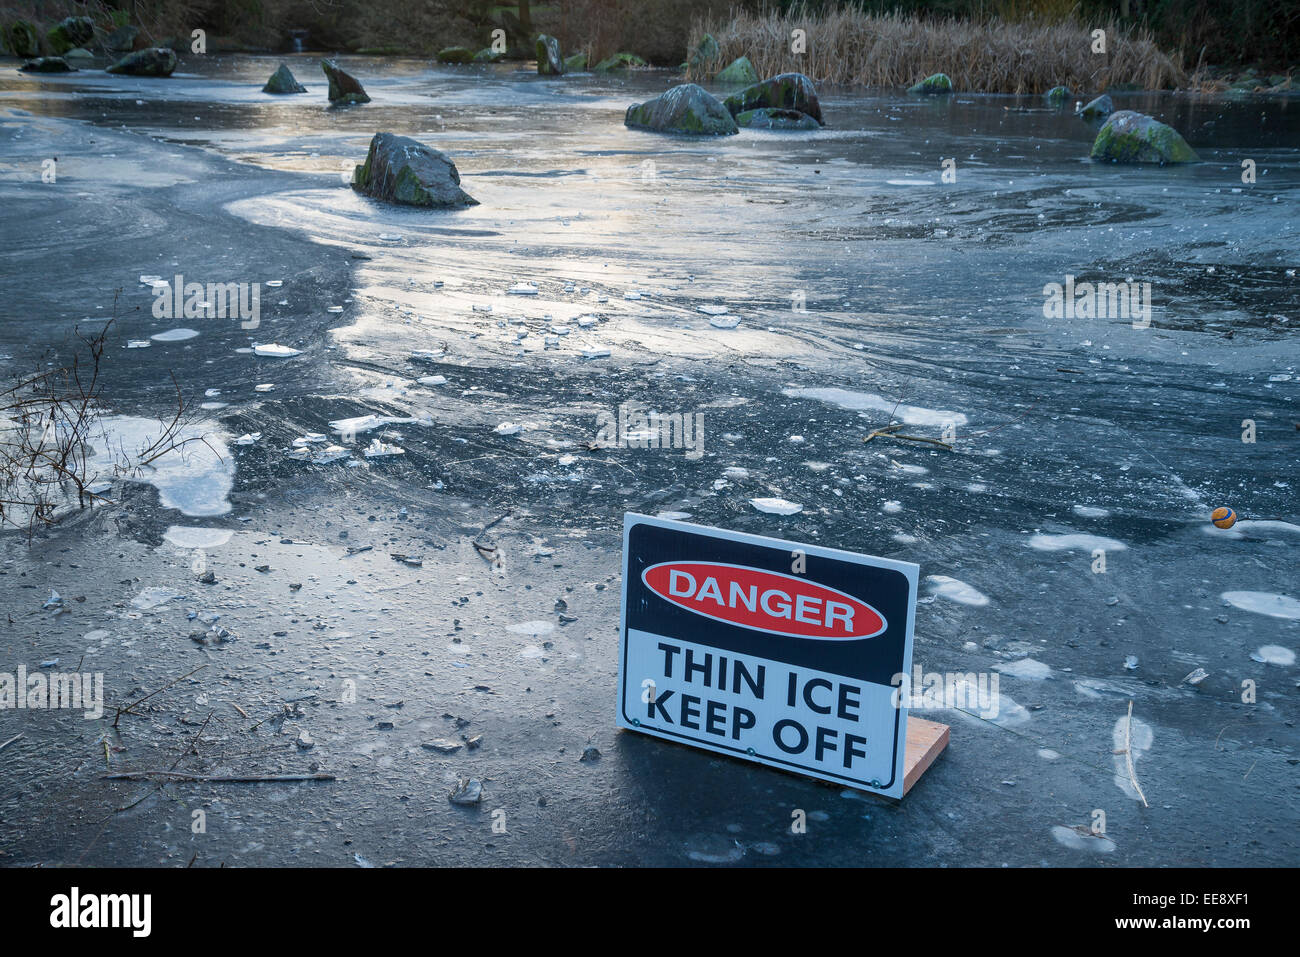 Danger Thin Ice sign, Charleson Park, Vancouver, British Columbia, Canada, - Stock Image